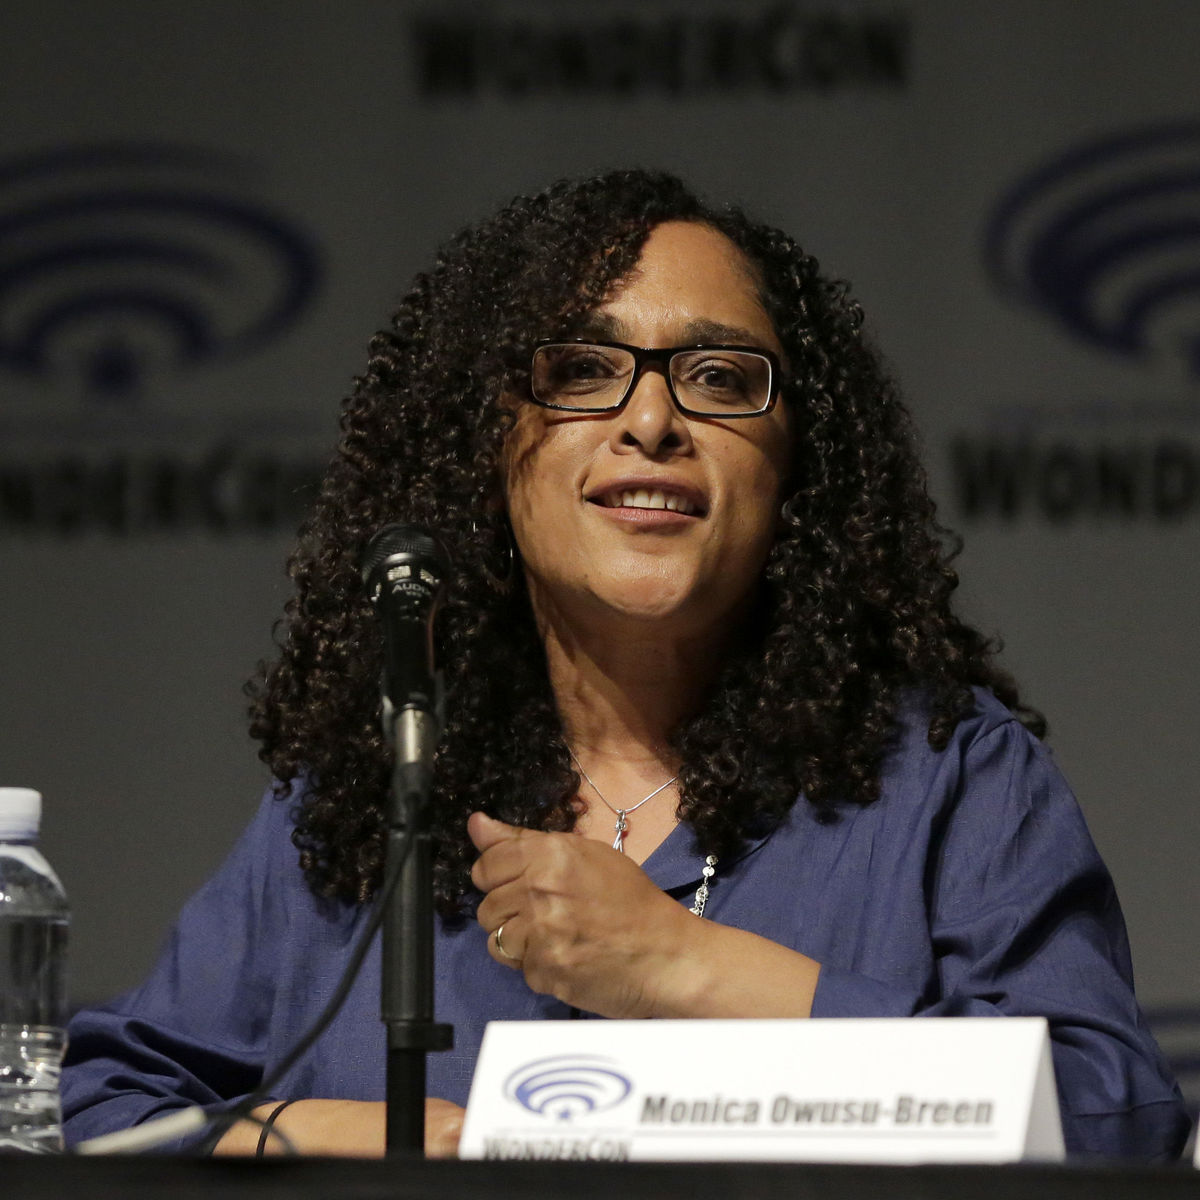 comic-con 2018 monica owusu-breen